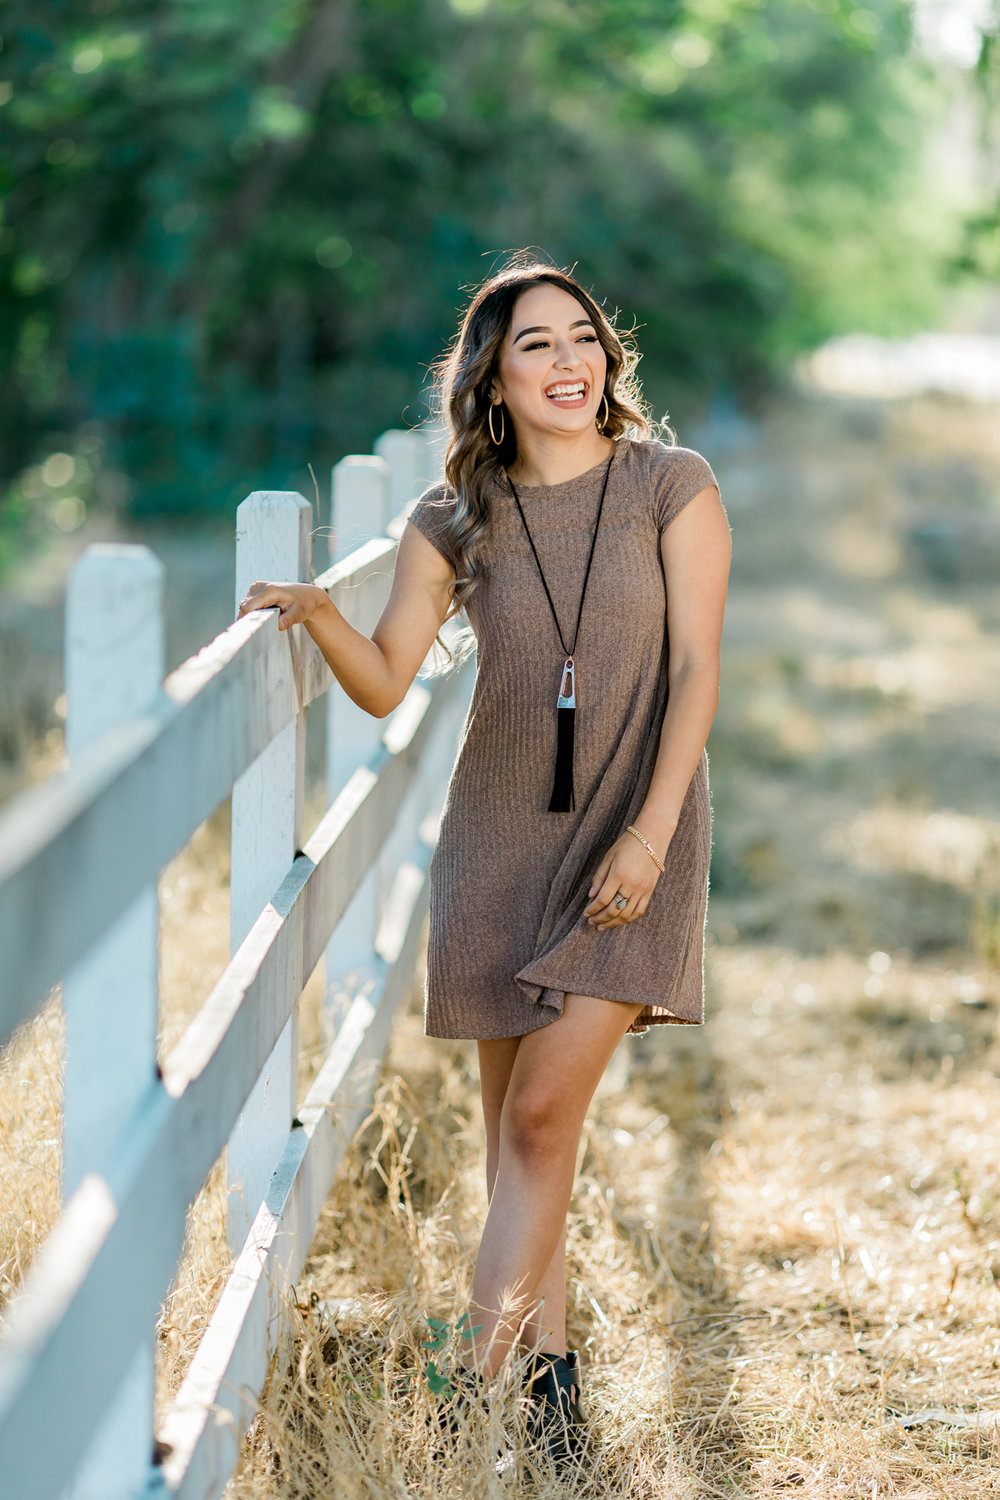 jillianmariephotography_californiaseniorportraits_Briana-4.jpg